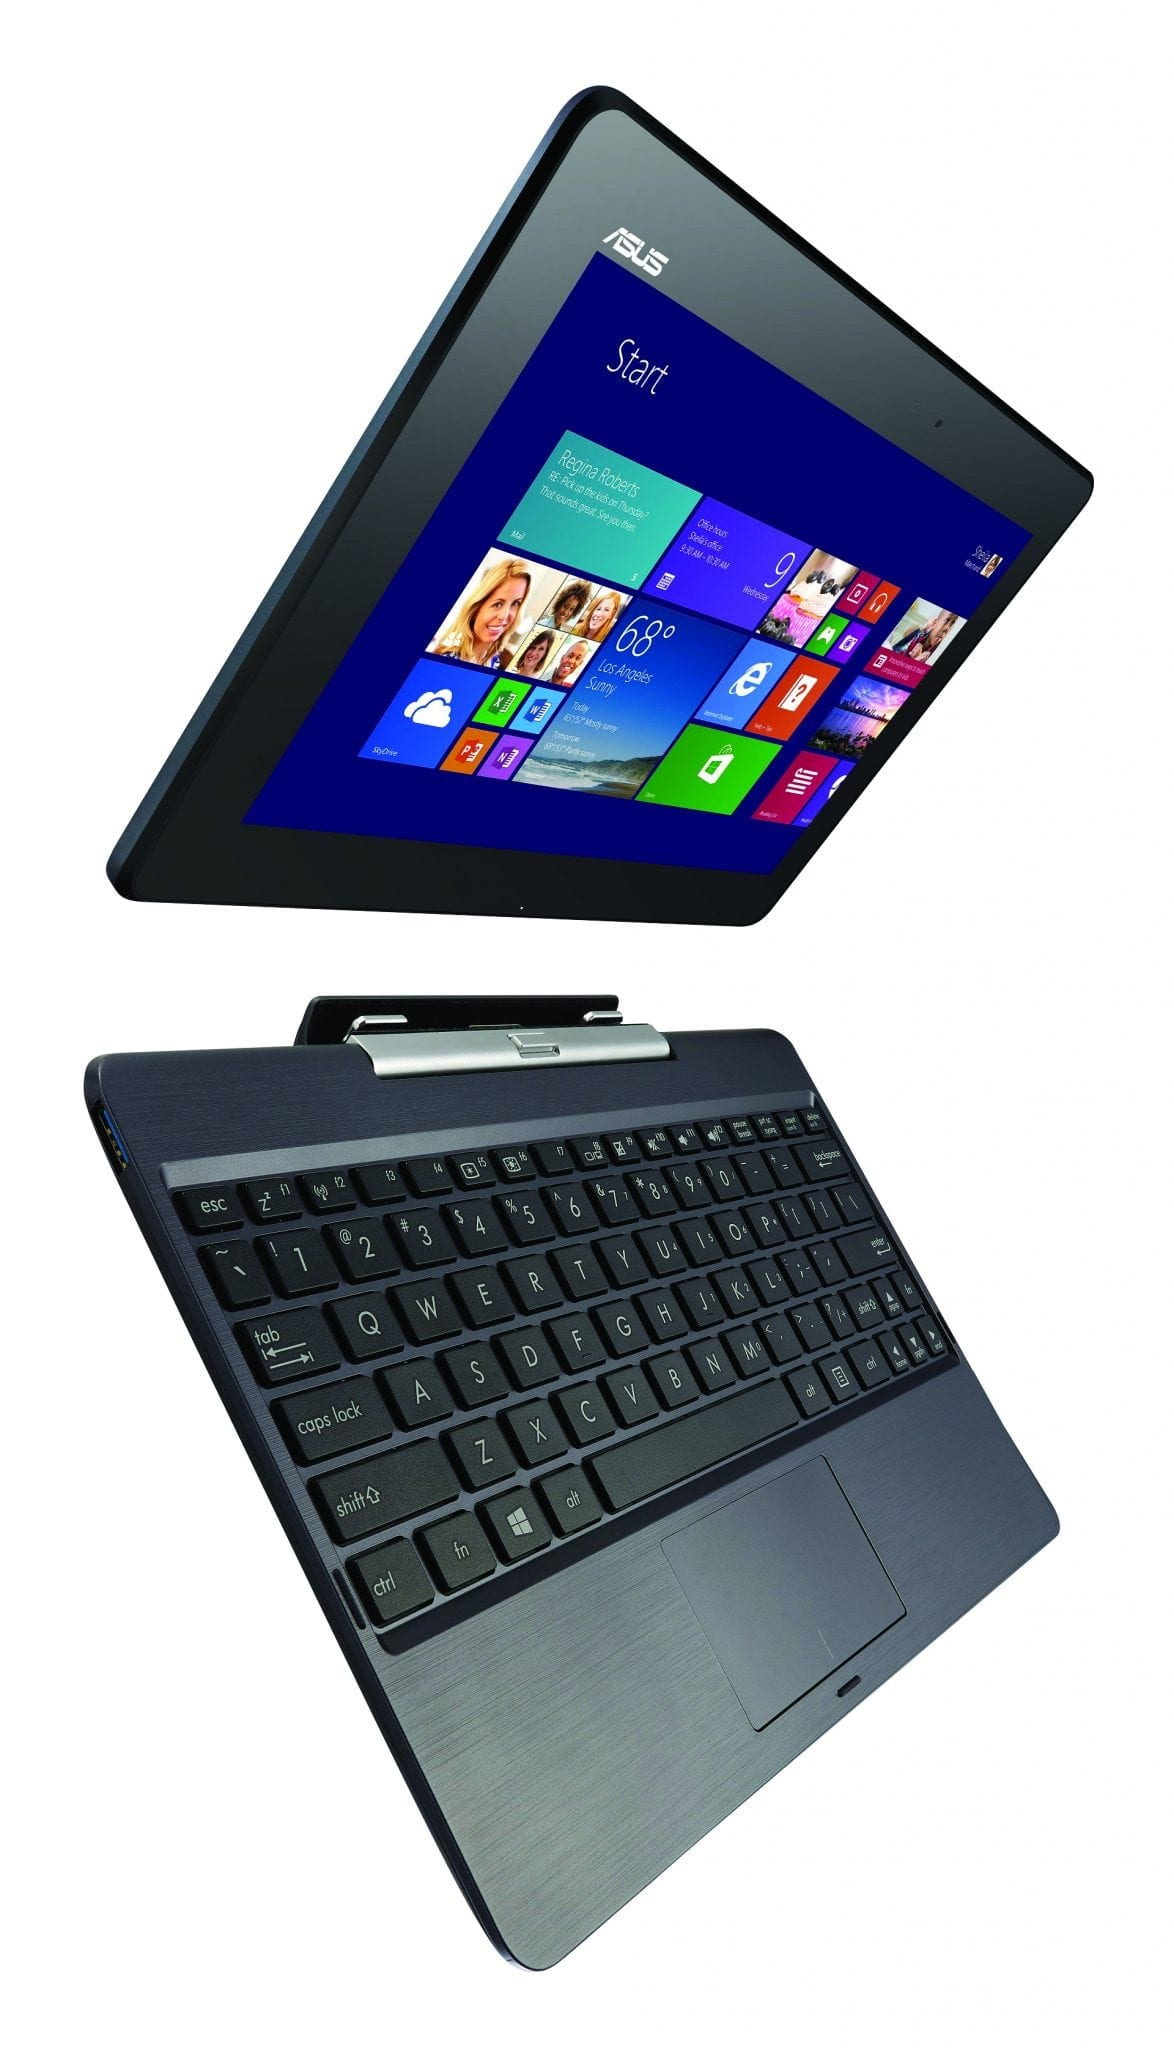 Tablete Windows în test de laborator: Lenovo Miix 2, Toshiba Encore, Asus Transformer Book